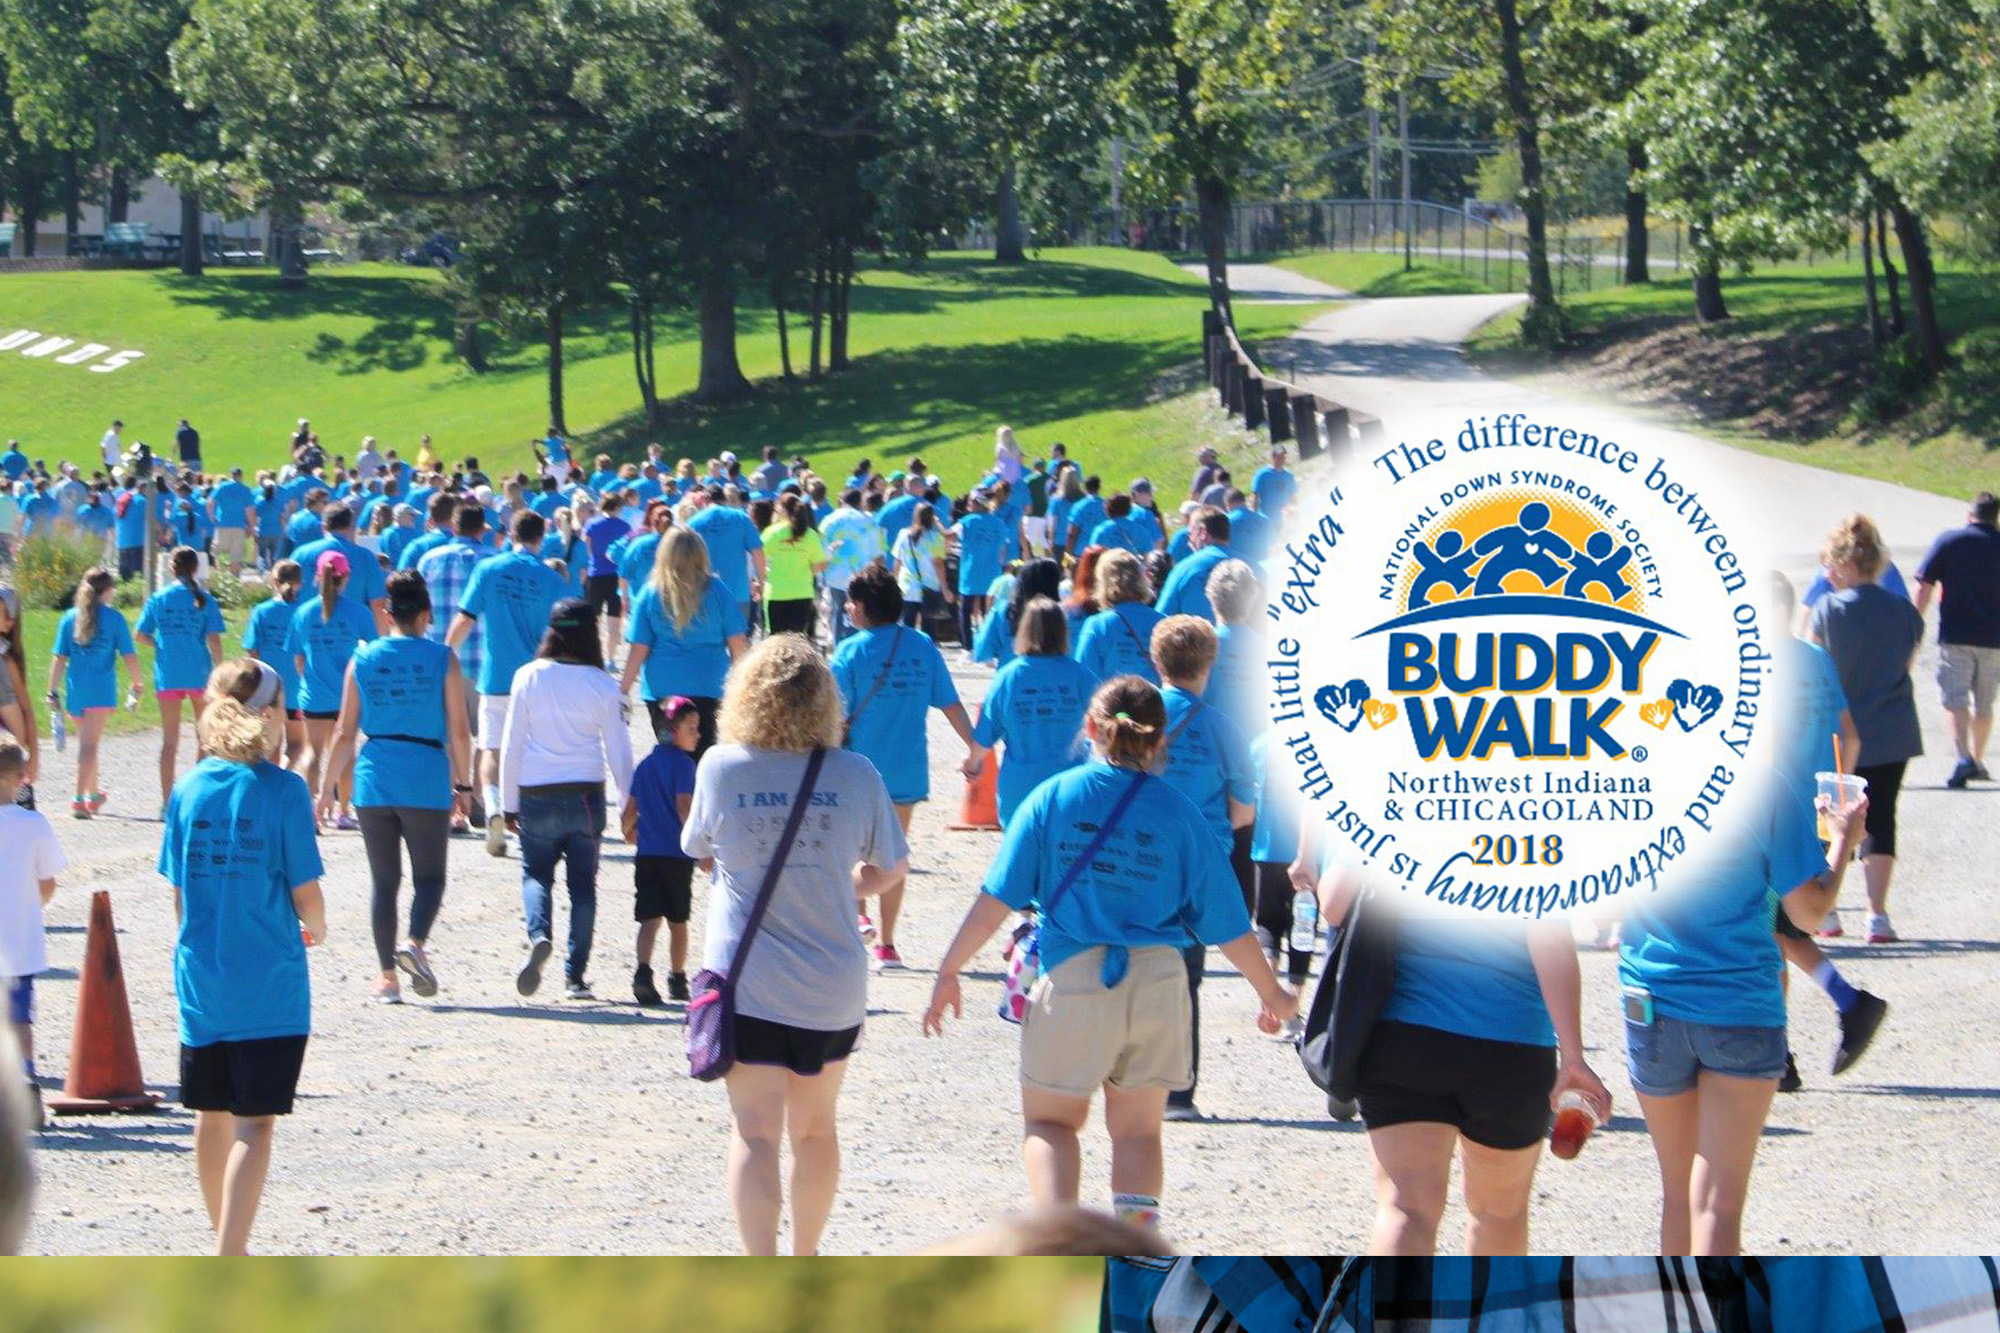 2018 Buddy Walk - SHIRT DEADLINE - (Last day to Register & guarantee a shirt)